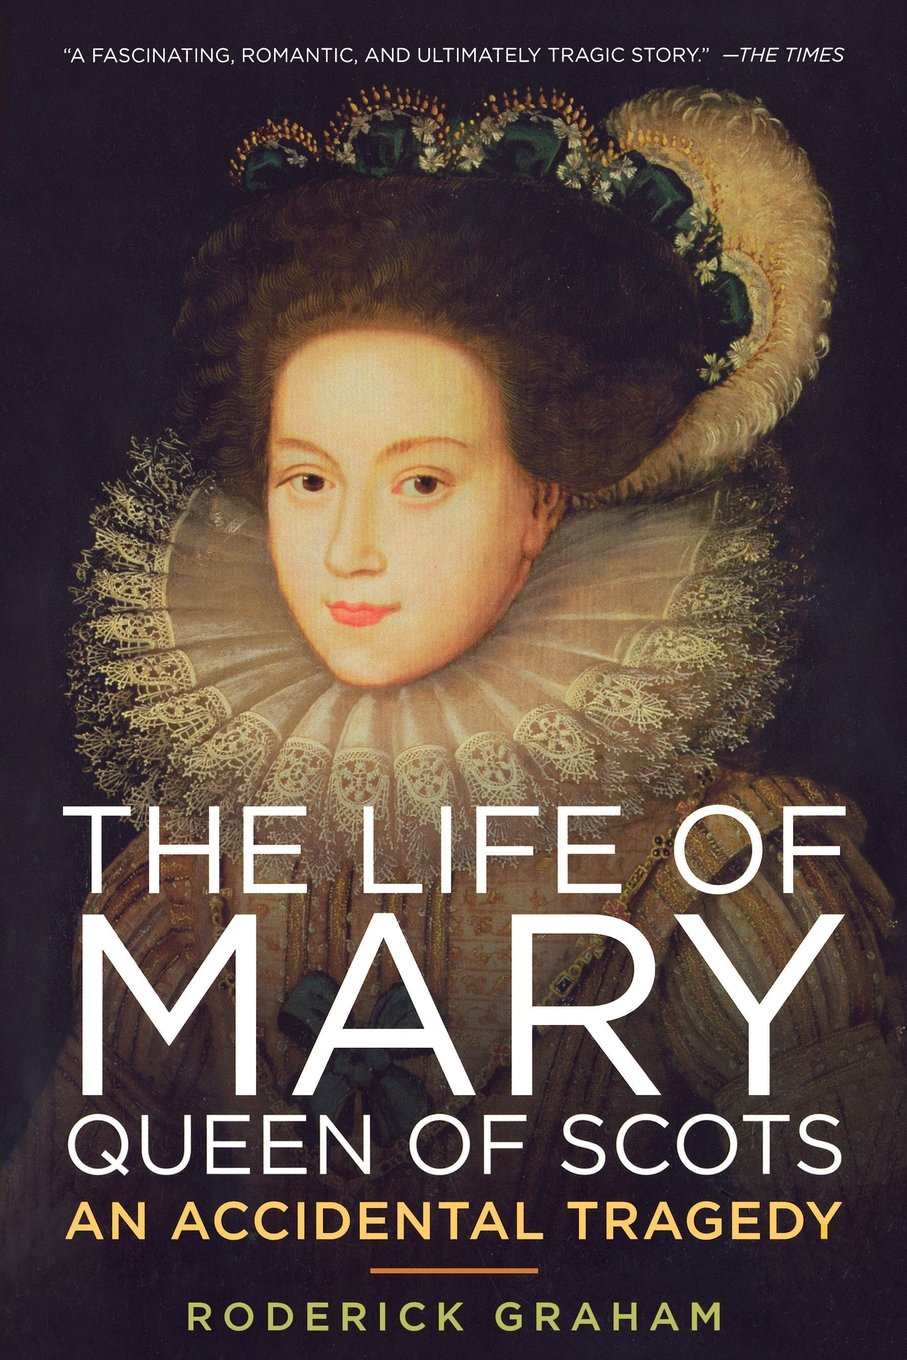 The Life of Mary, Queen of Scots: An Accidental Tragedy: Roderick Graham:  9781605981413: Amazon.com: Books